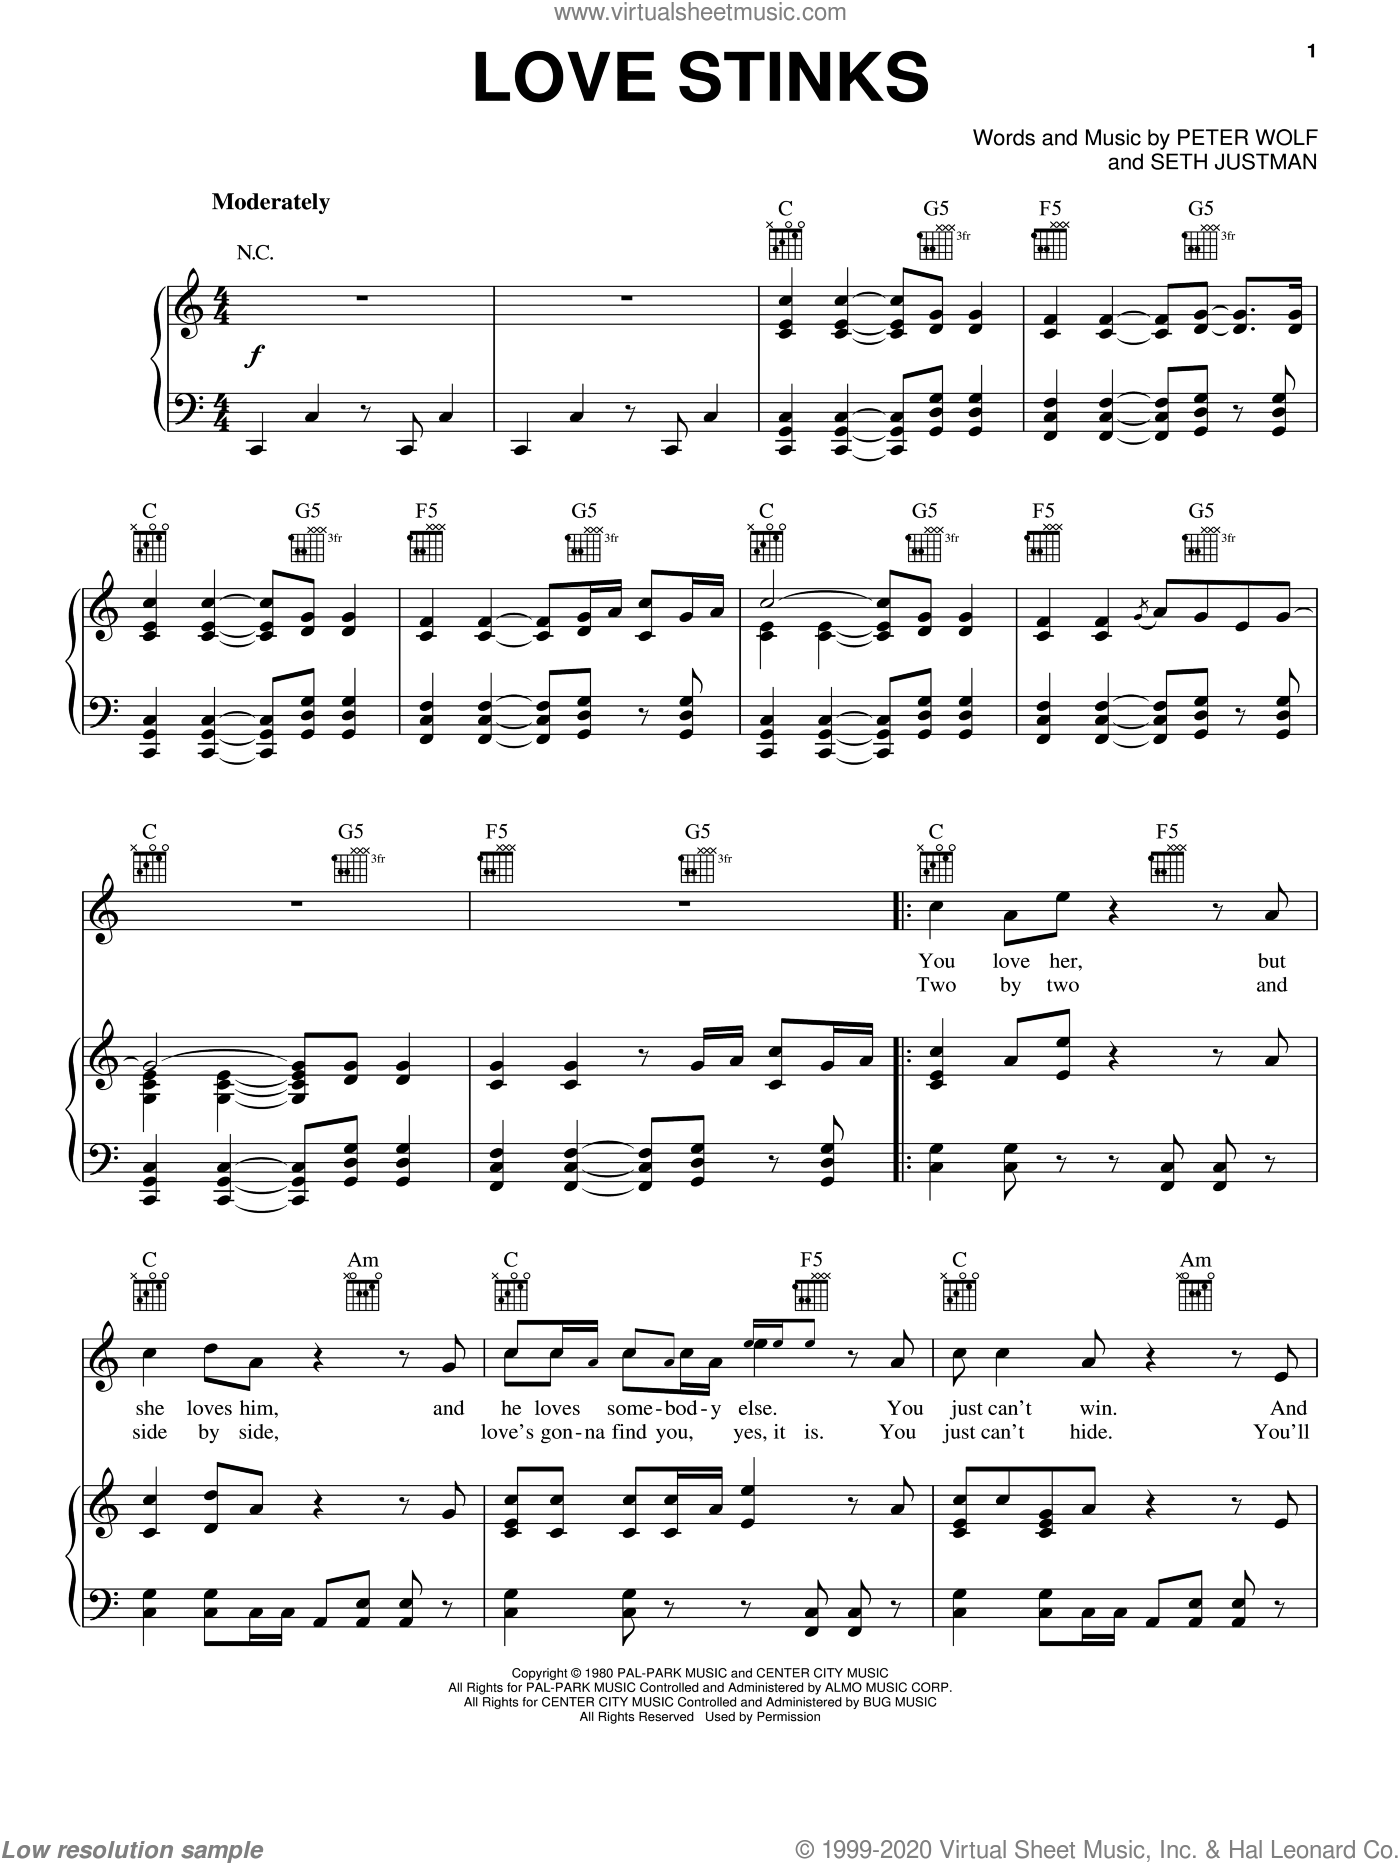 Love Stinks sheet music for voice, piano or guitar by Seth Justman